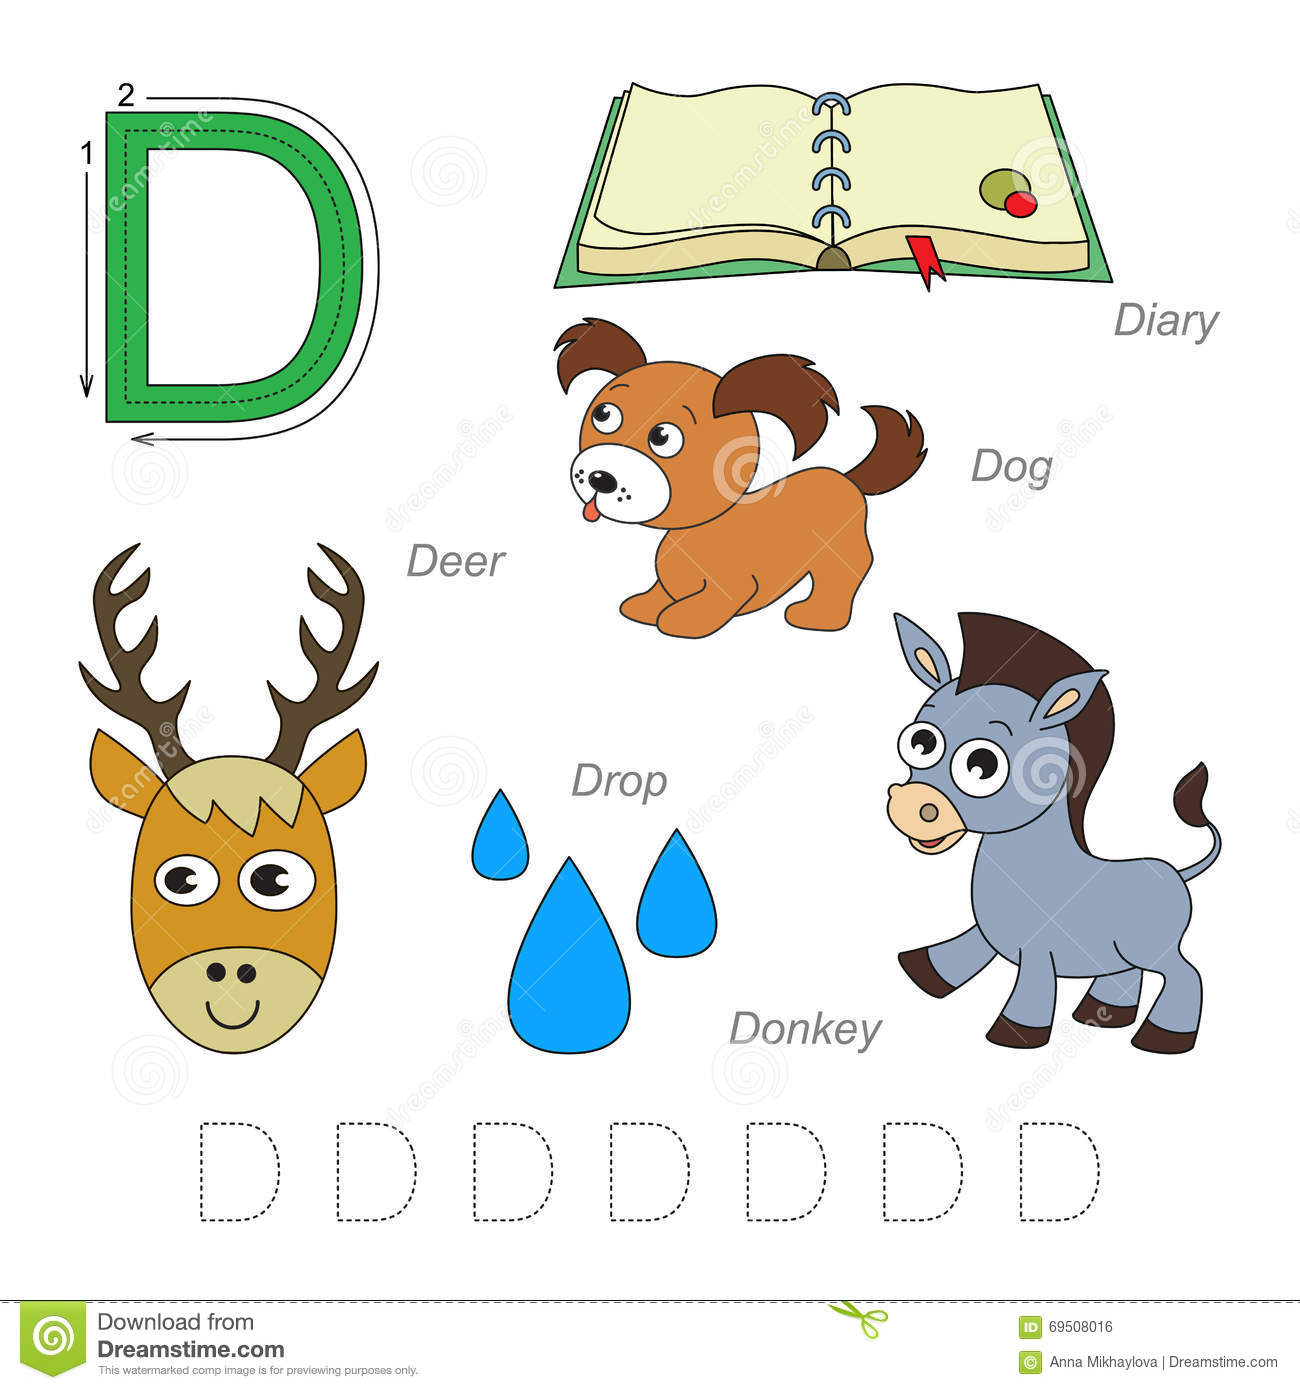 C Ac E E D D Ff A Ddbd D as well Capital Letter R Worksheet furthermore Alphabet Flashcards For Preschooler Letter P Color also A Z Tracing Worksheet Homework For Kids Worksheets Alphabet Exercises Illustration And Outline A Paper Ready furthermore D D A C A A D B M. on letter z worksheets preschool